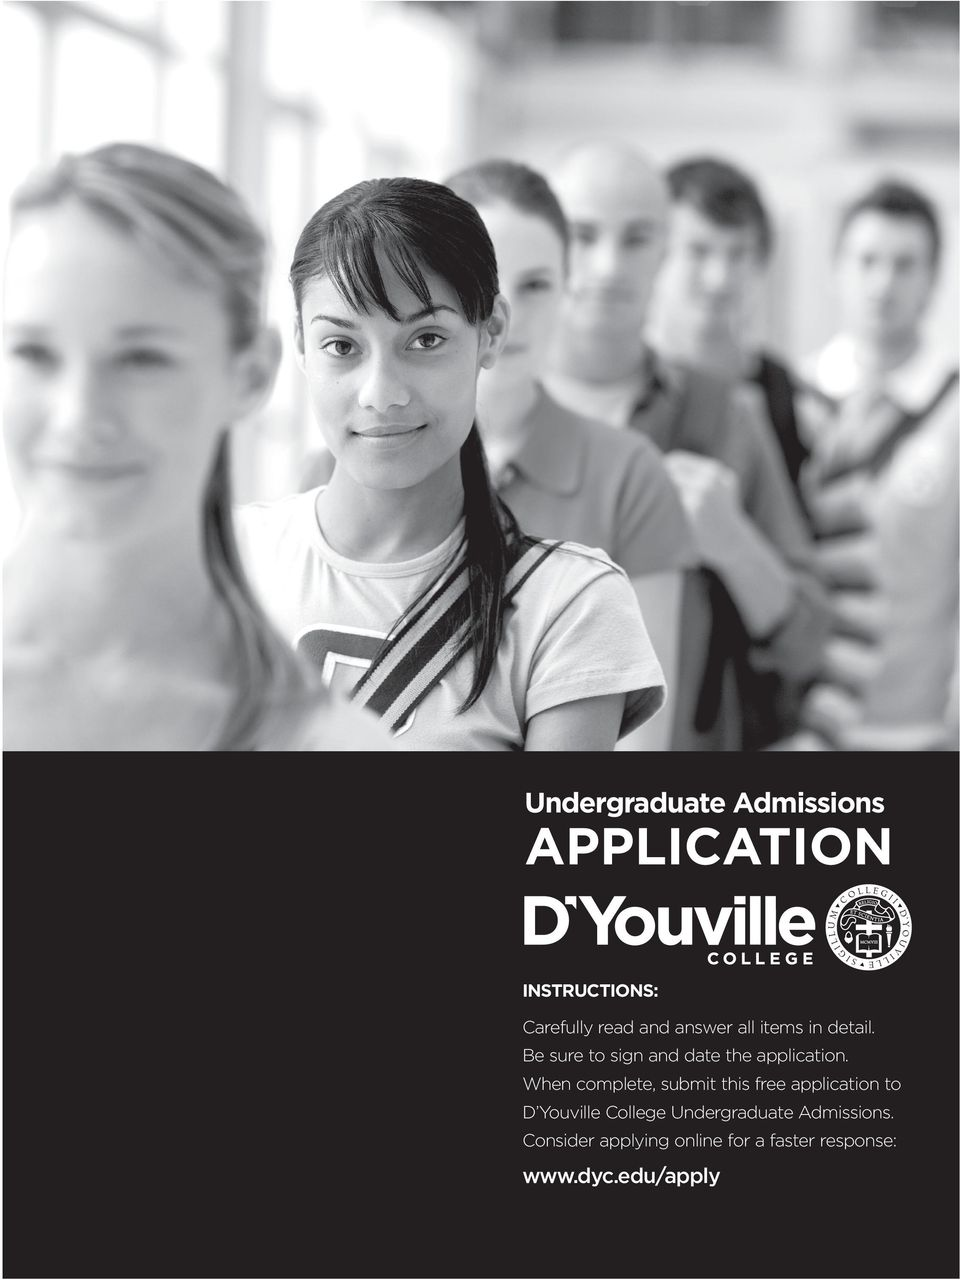 When complete, submit this free ap pli ca tion to D Youville College